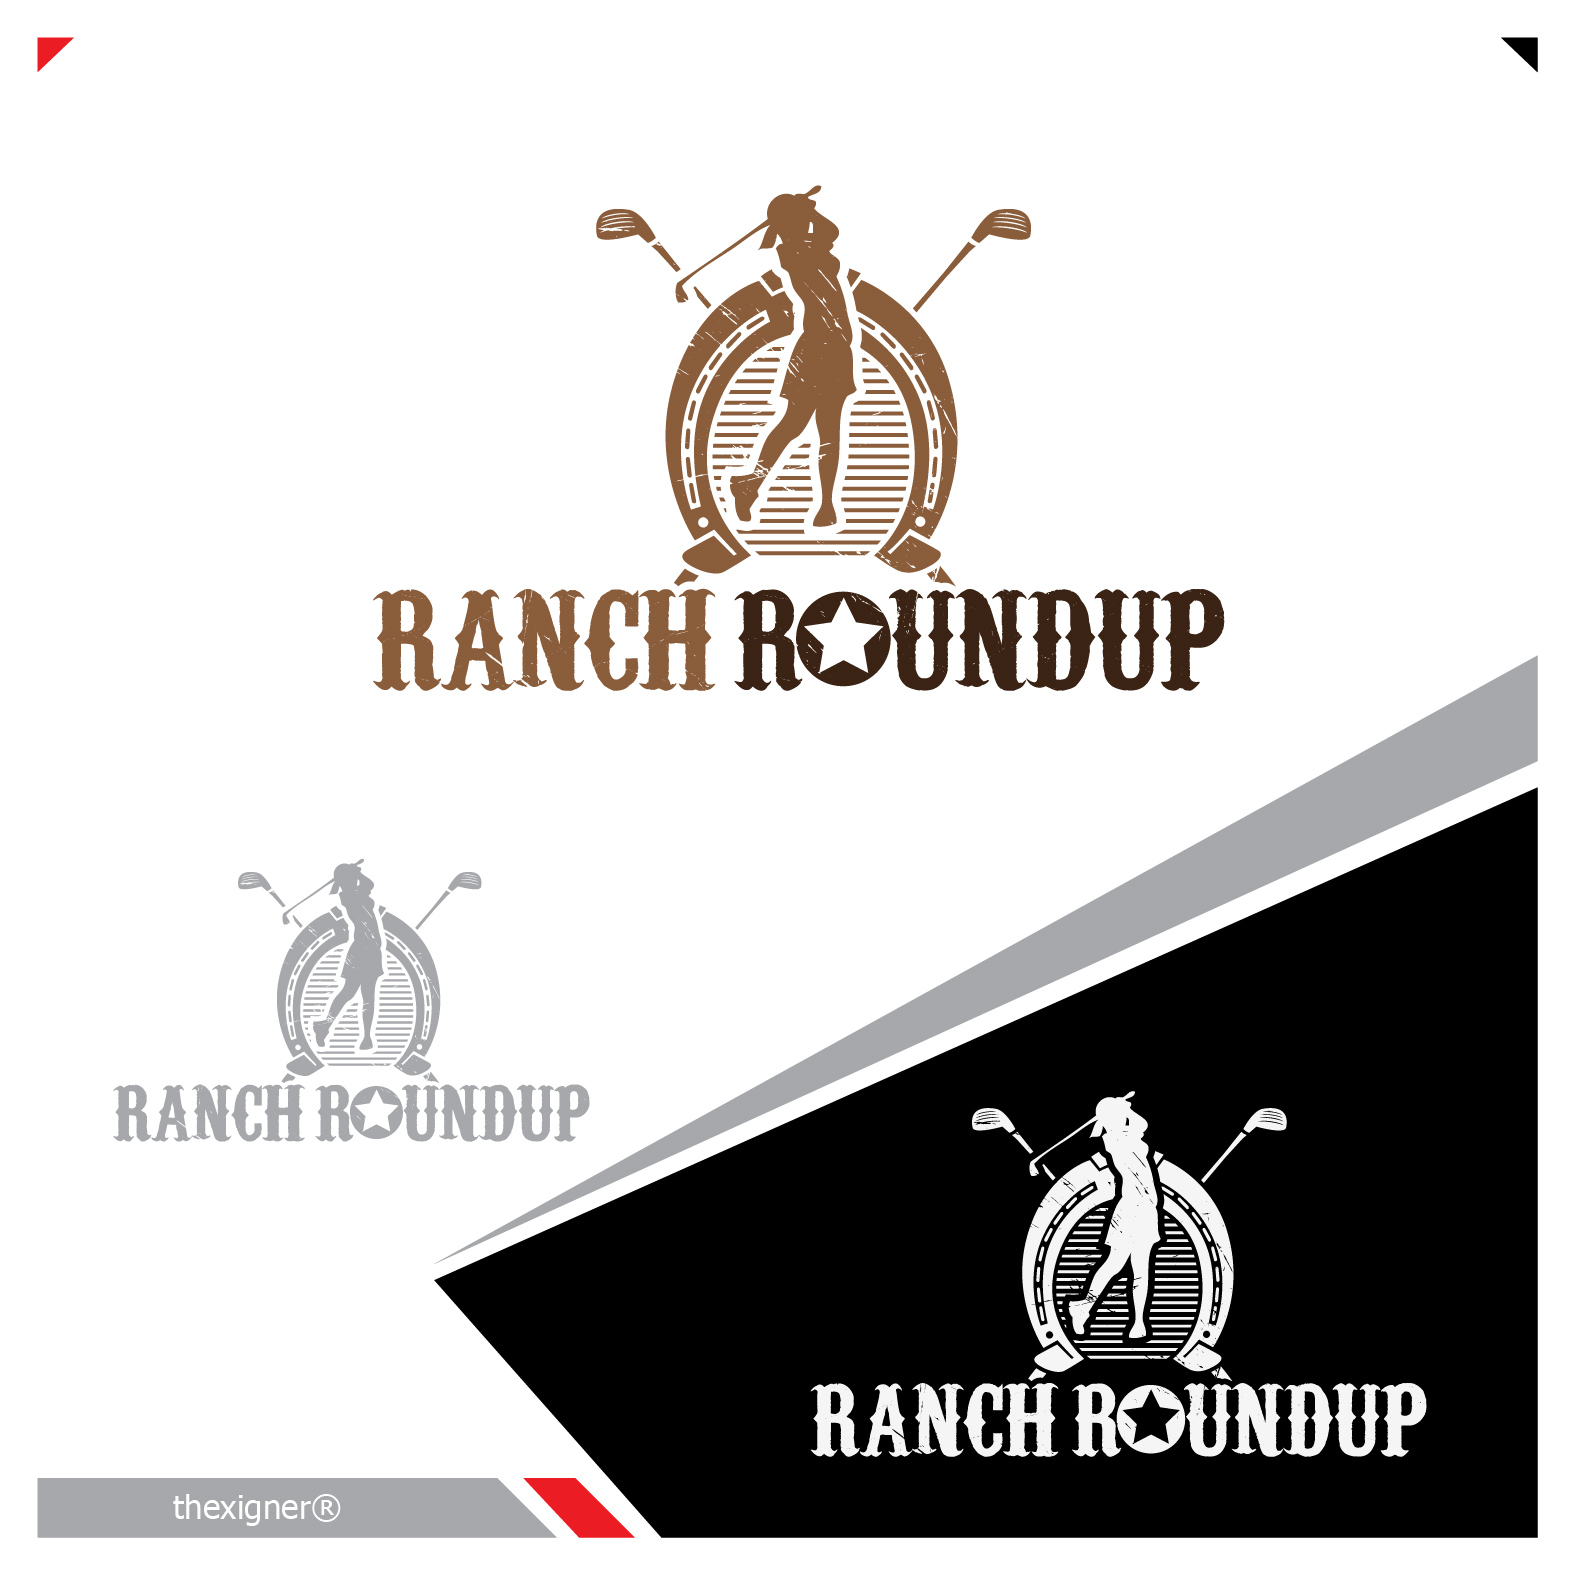 Logo Design by lagalag - Entry No. 11 in the Logo Design Contest Captivating Logo Design for Ranch Roundup.